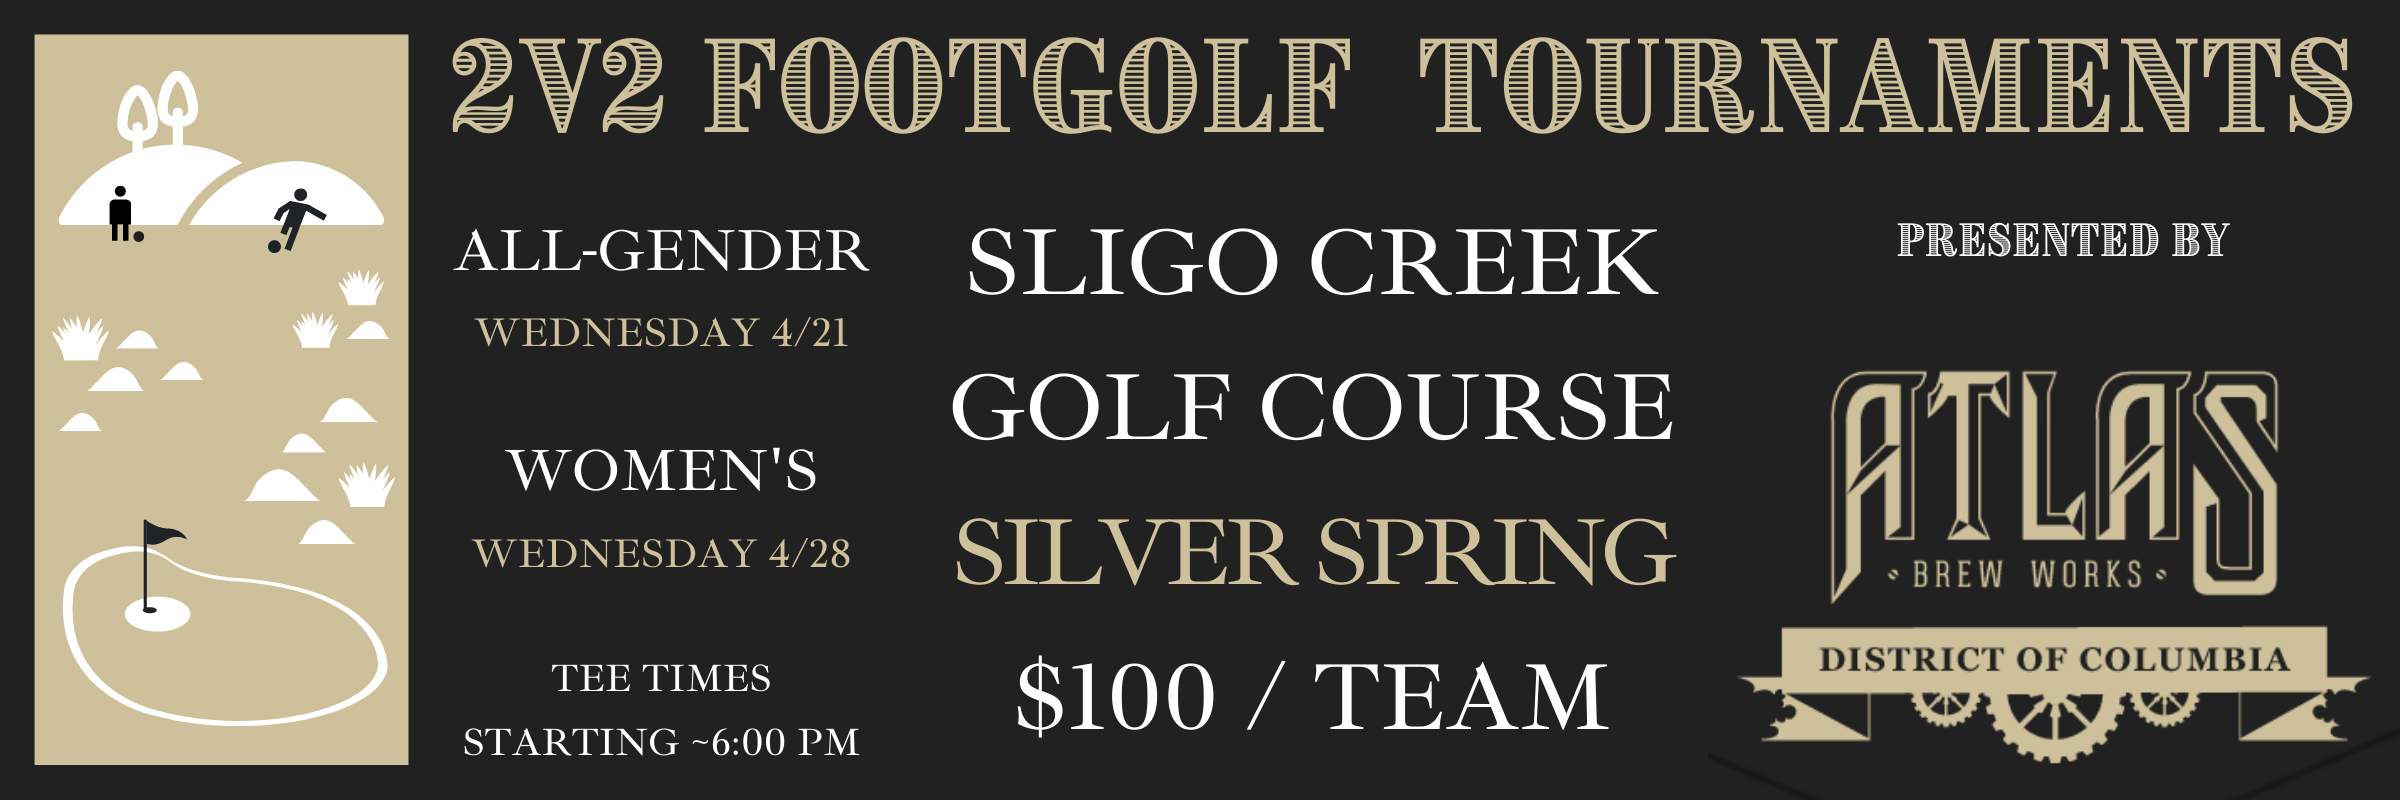 2v2 FOOTGOLF TOURNAMENTS presented by ATLAS BREW WORKS in Ivy City